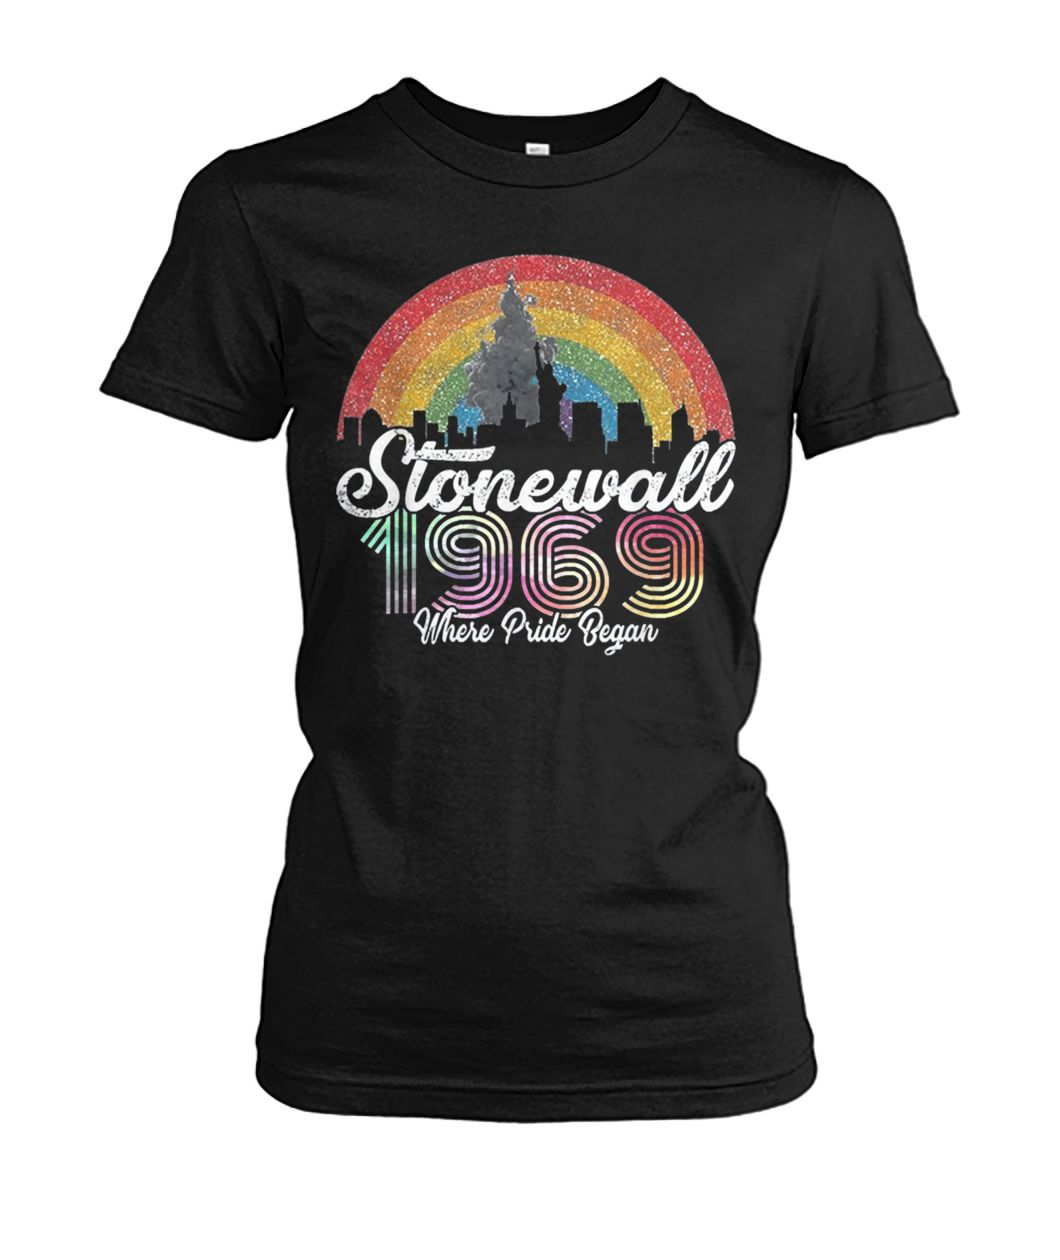 LGBT pride stonewall 1969 where pride began women's crew tee